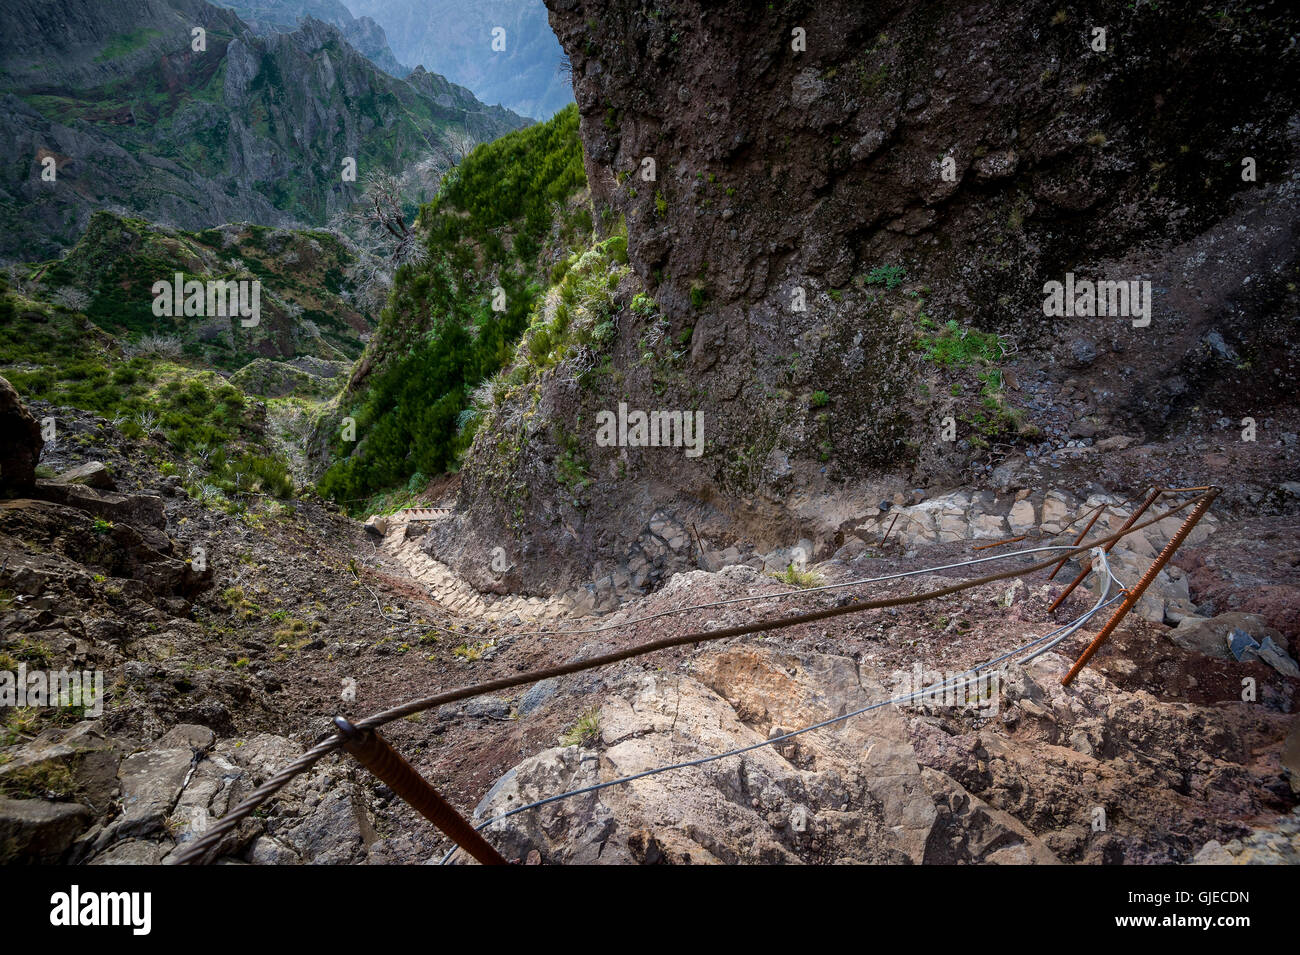 Steep stone stair in the rocky paths of Madeira island. - Stock Image